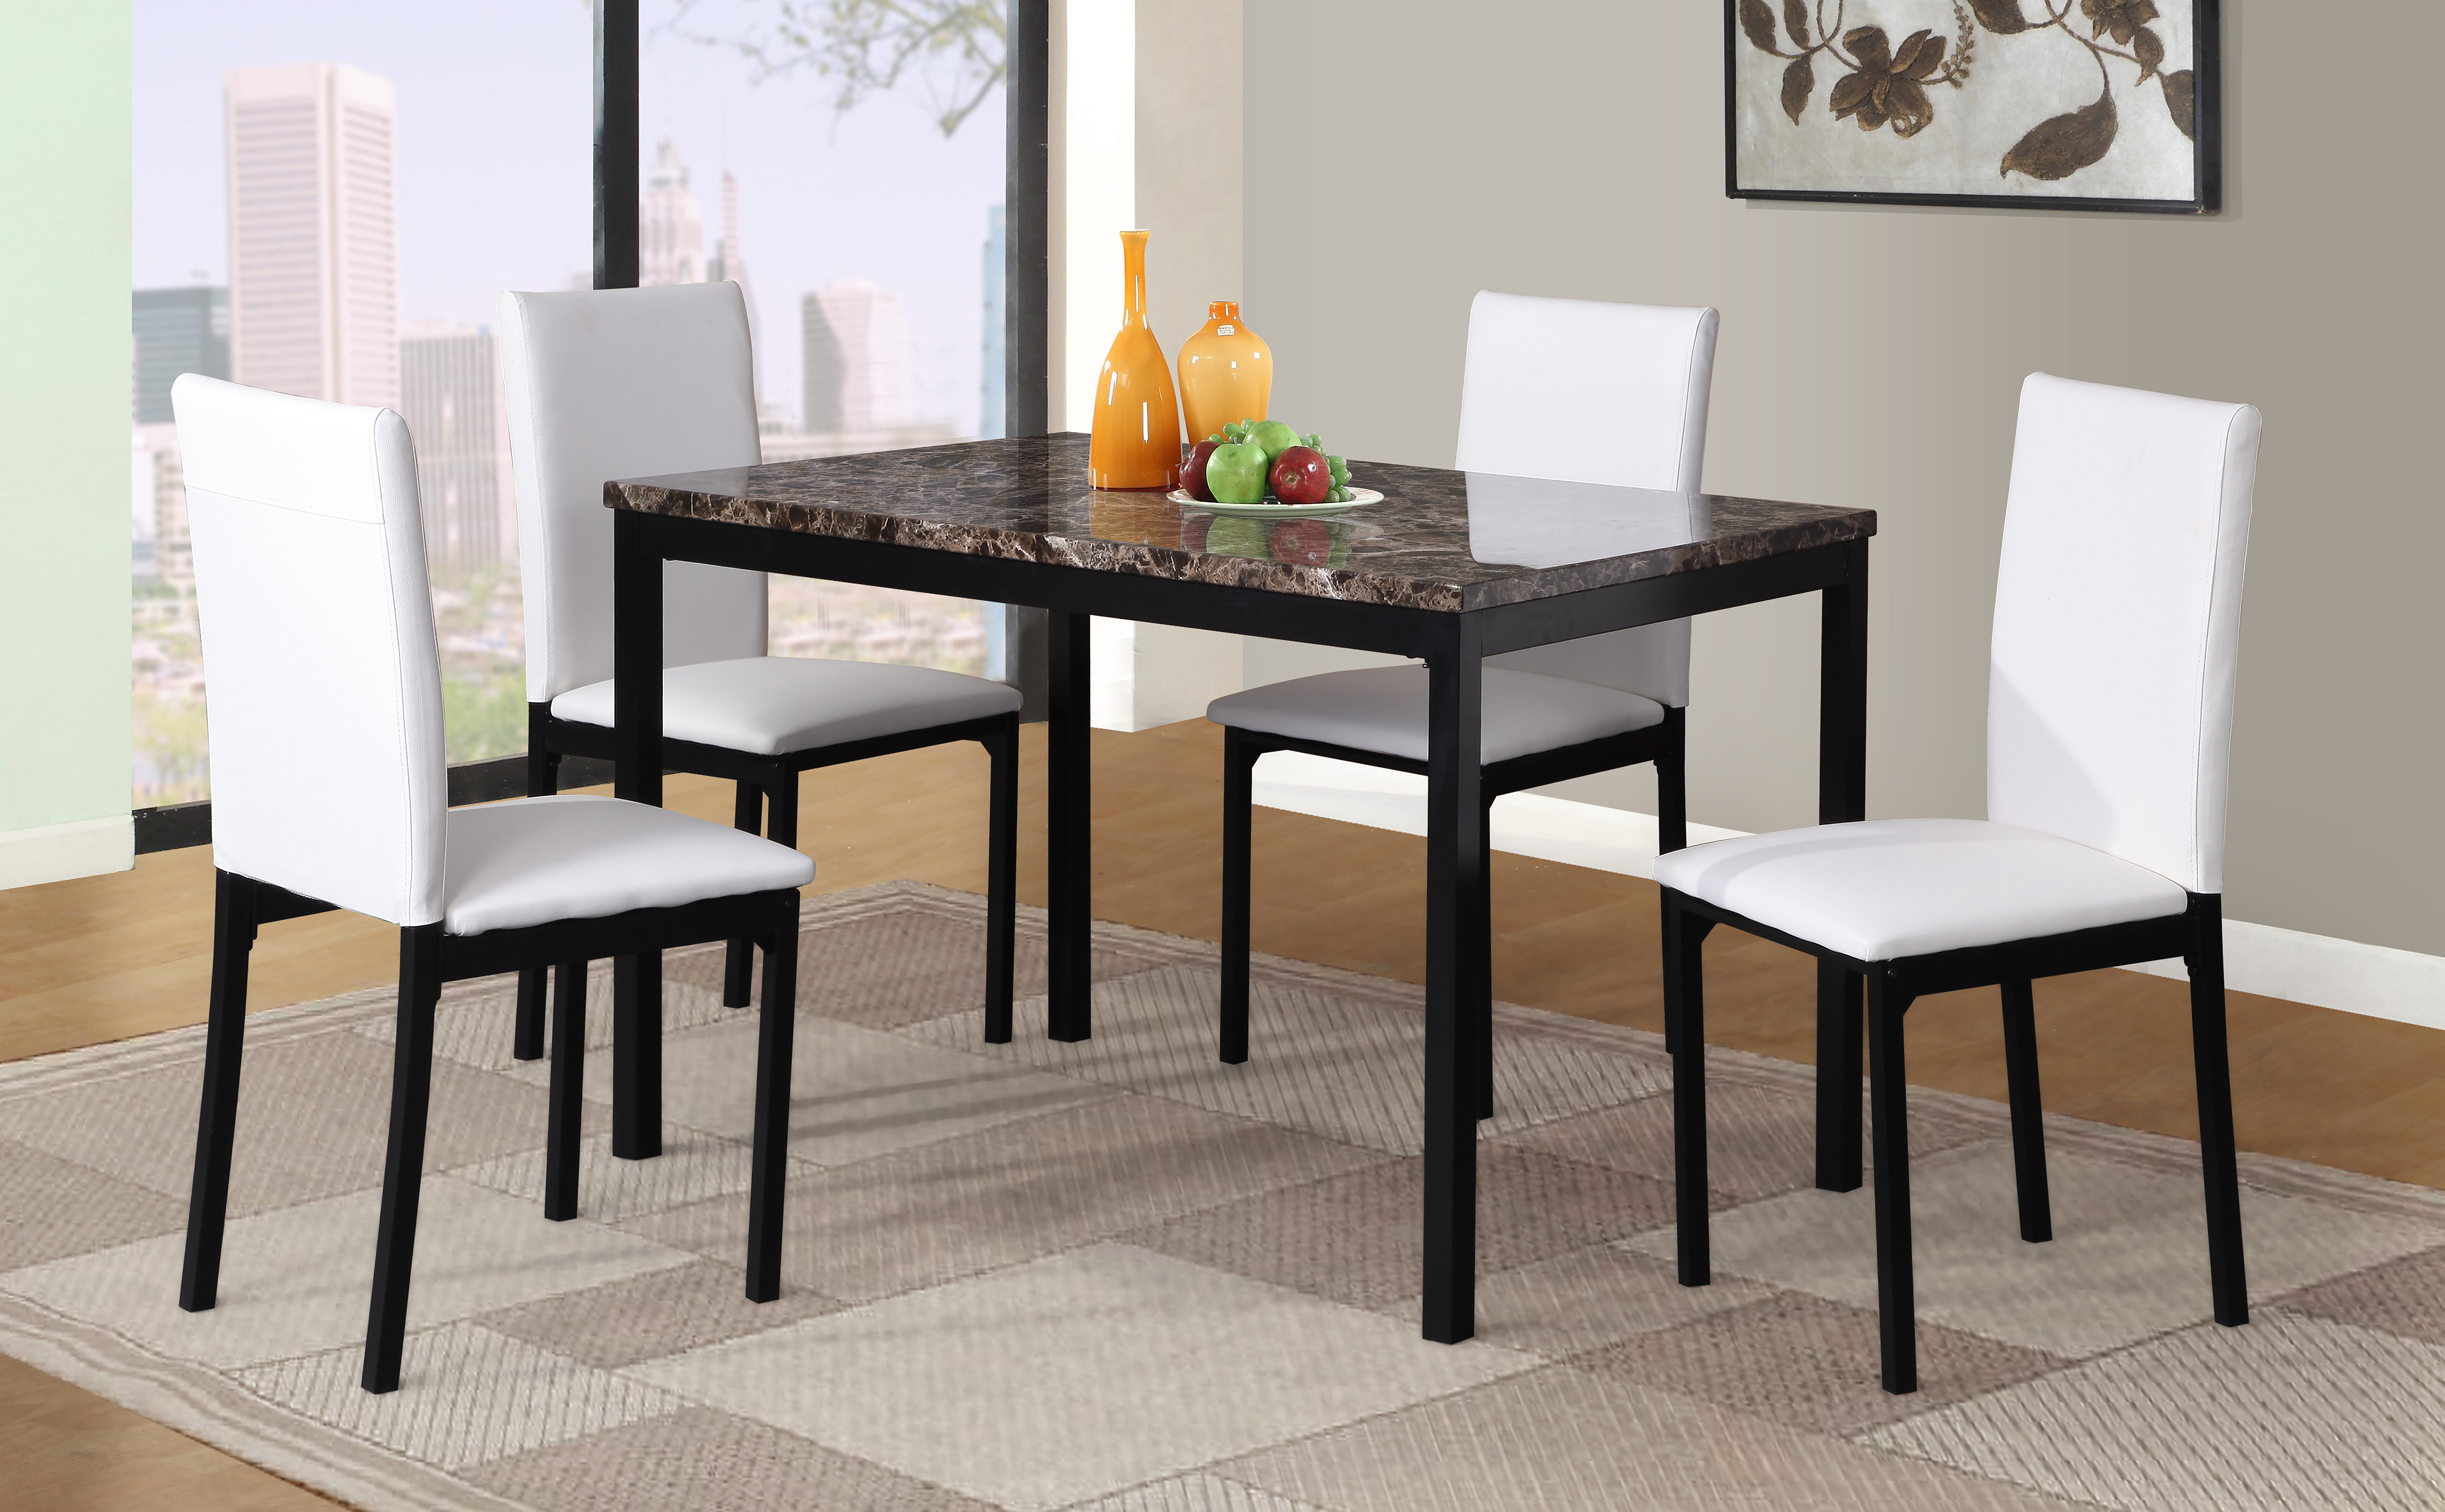 Red Barrel Studio Noyes 5 Piece Dining Set Within Current Noyes 5 Piece Dining Sets (View 3 of 20)